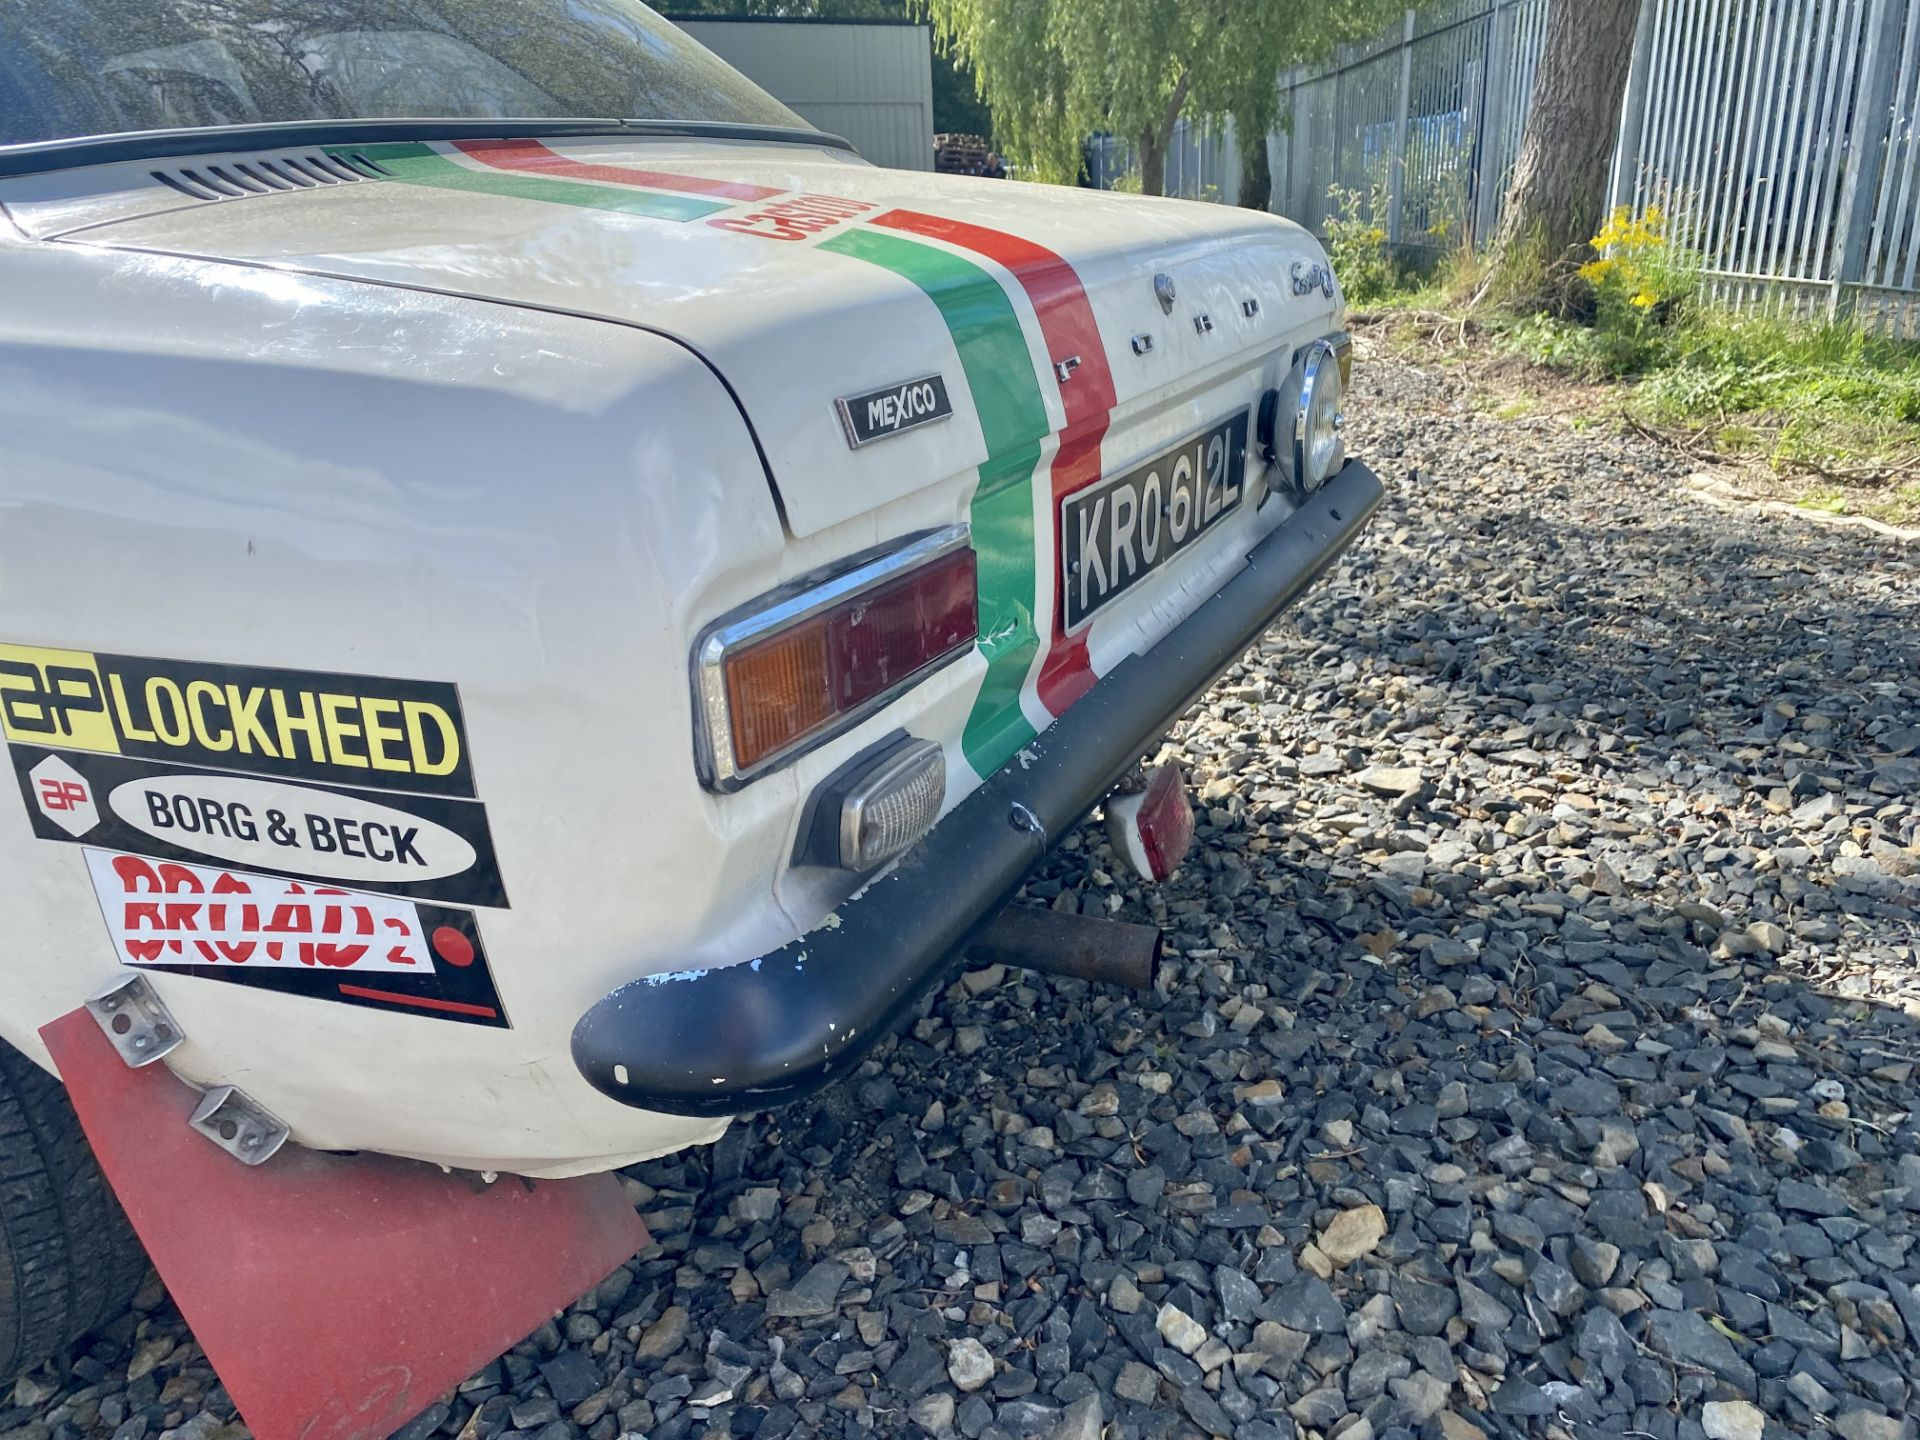 Ford Escort Mexico - Image 9 of 51